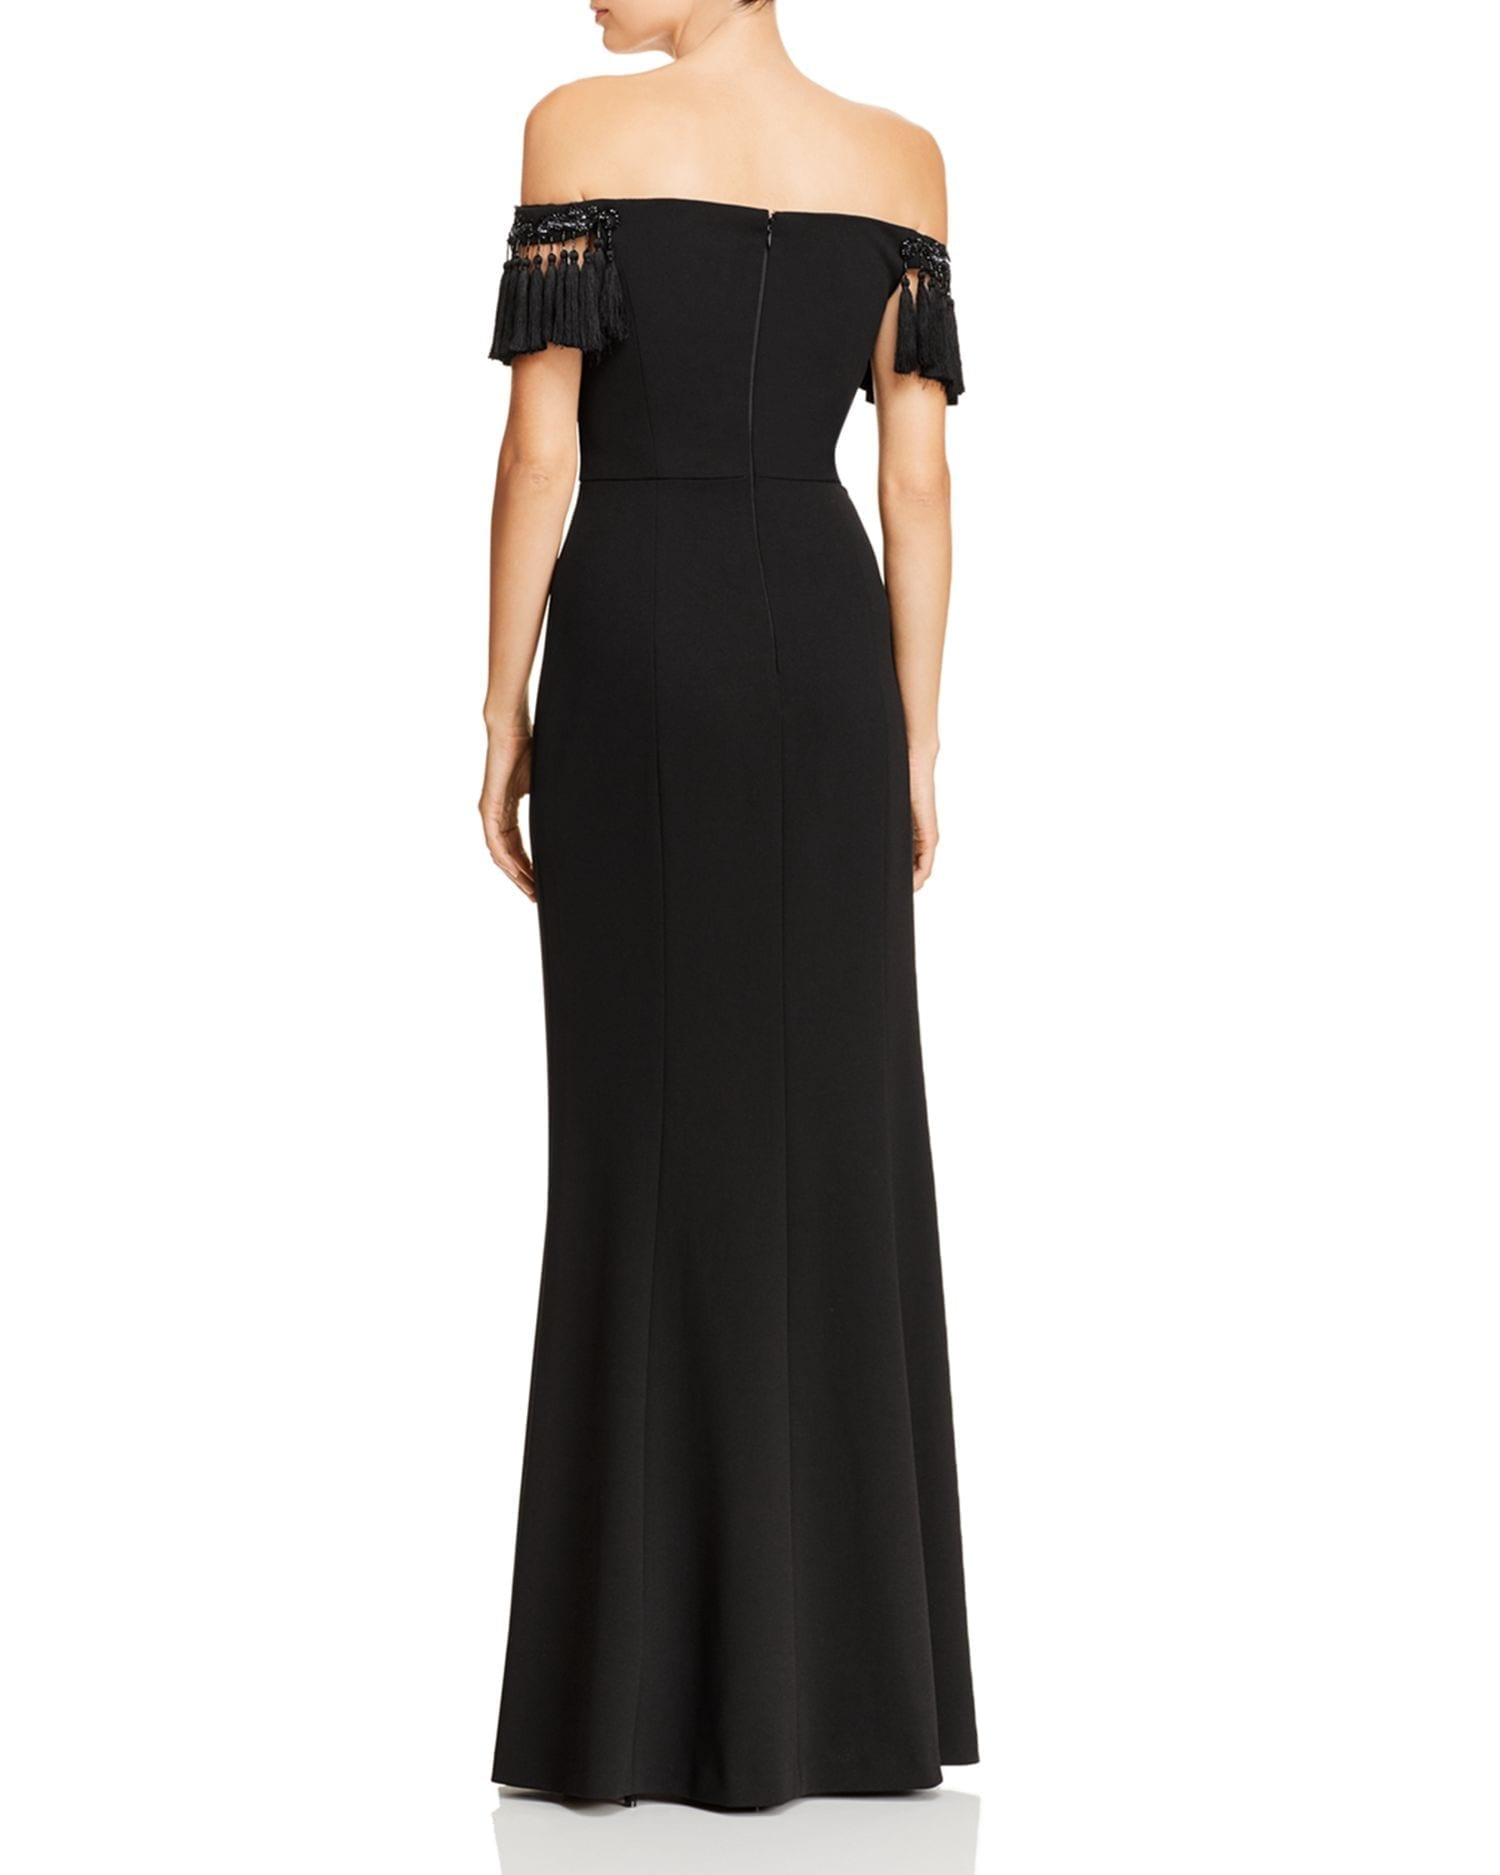 37ab0fcf1ca AIDAN MATTOX Off-the-Shoulder Tasseled Black Gown - We Select Dresses